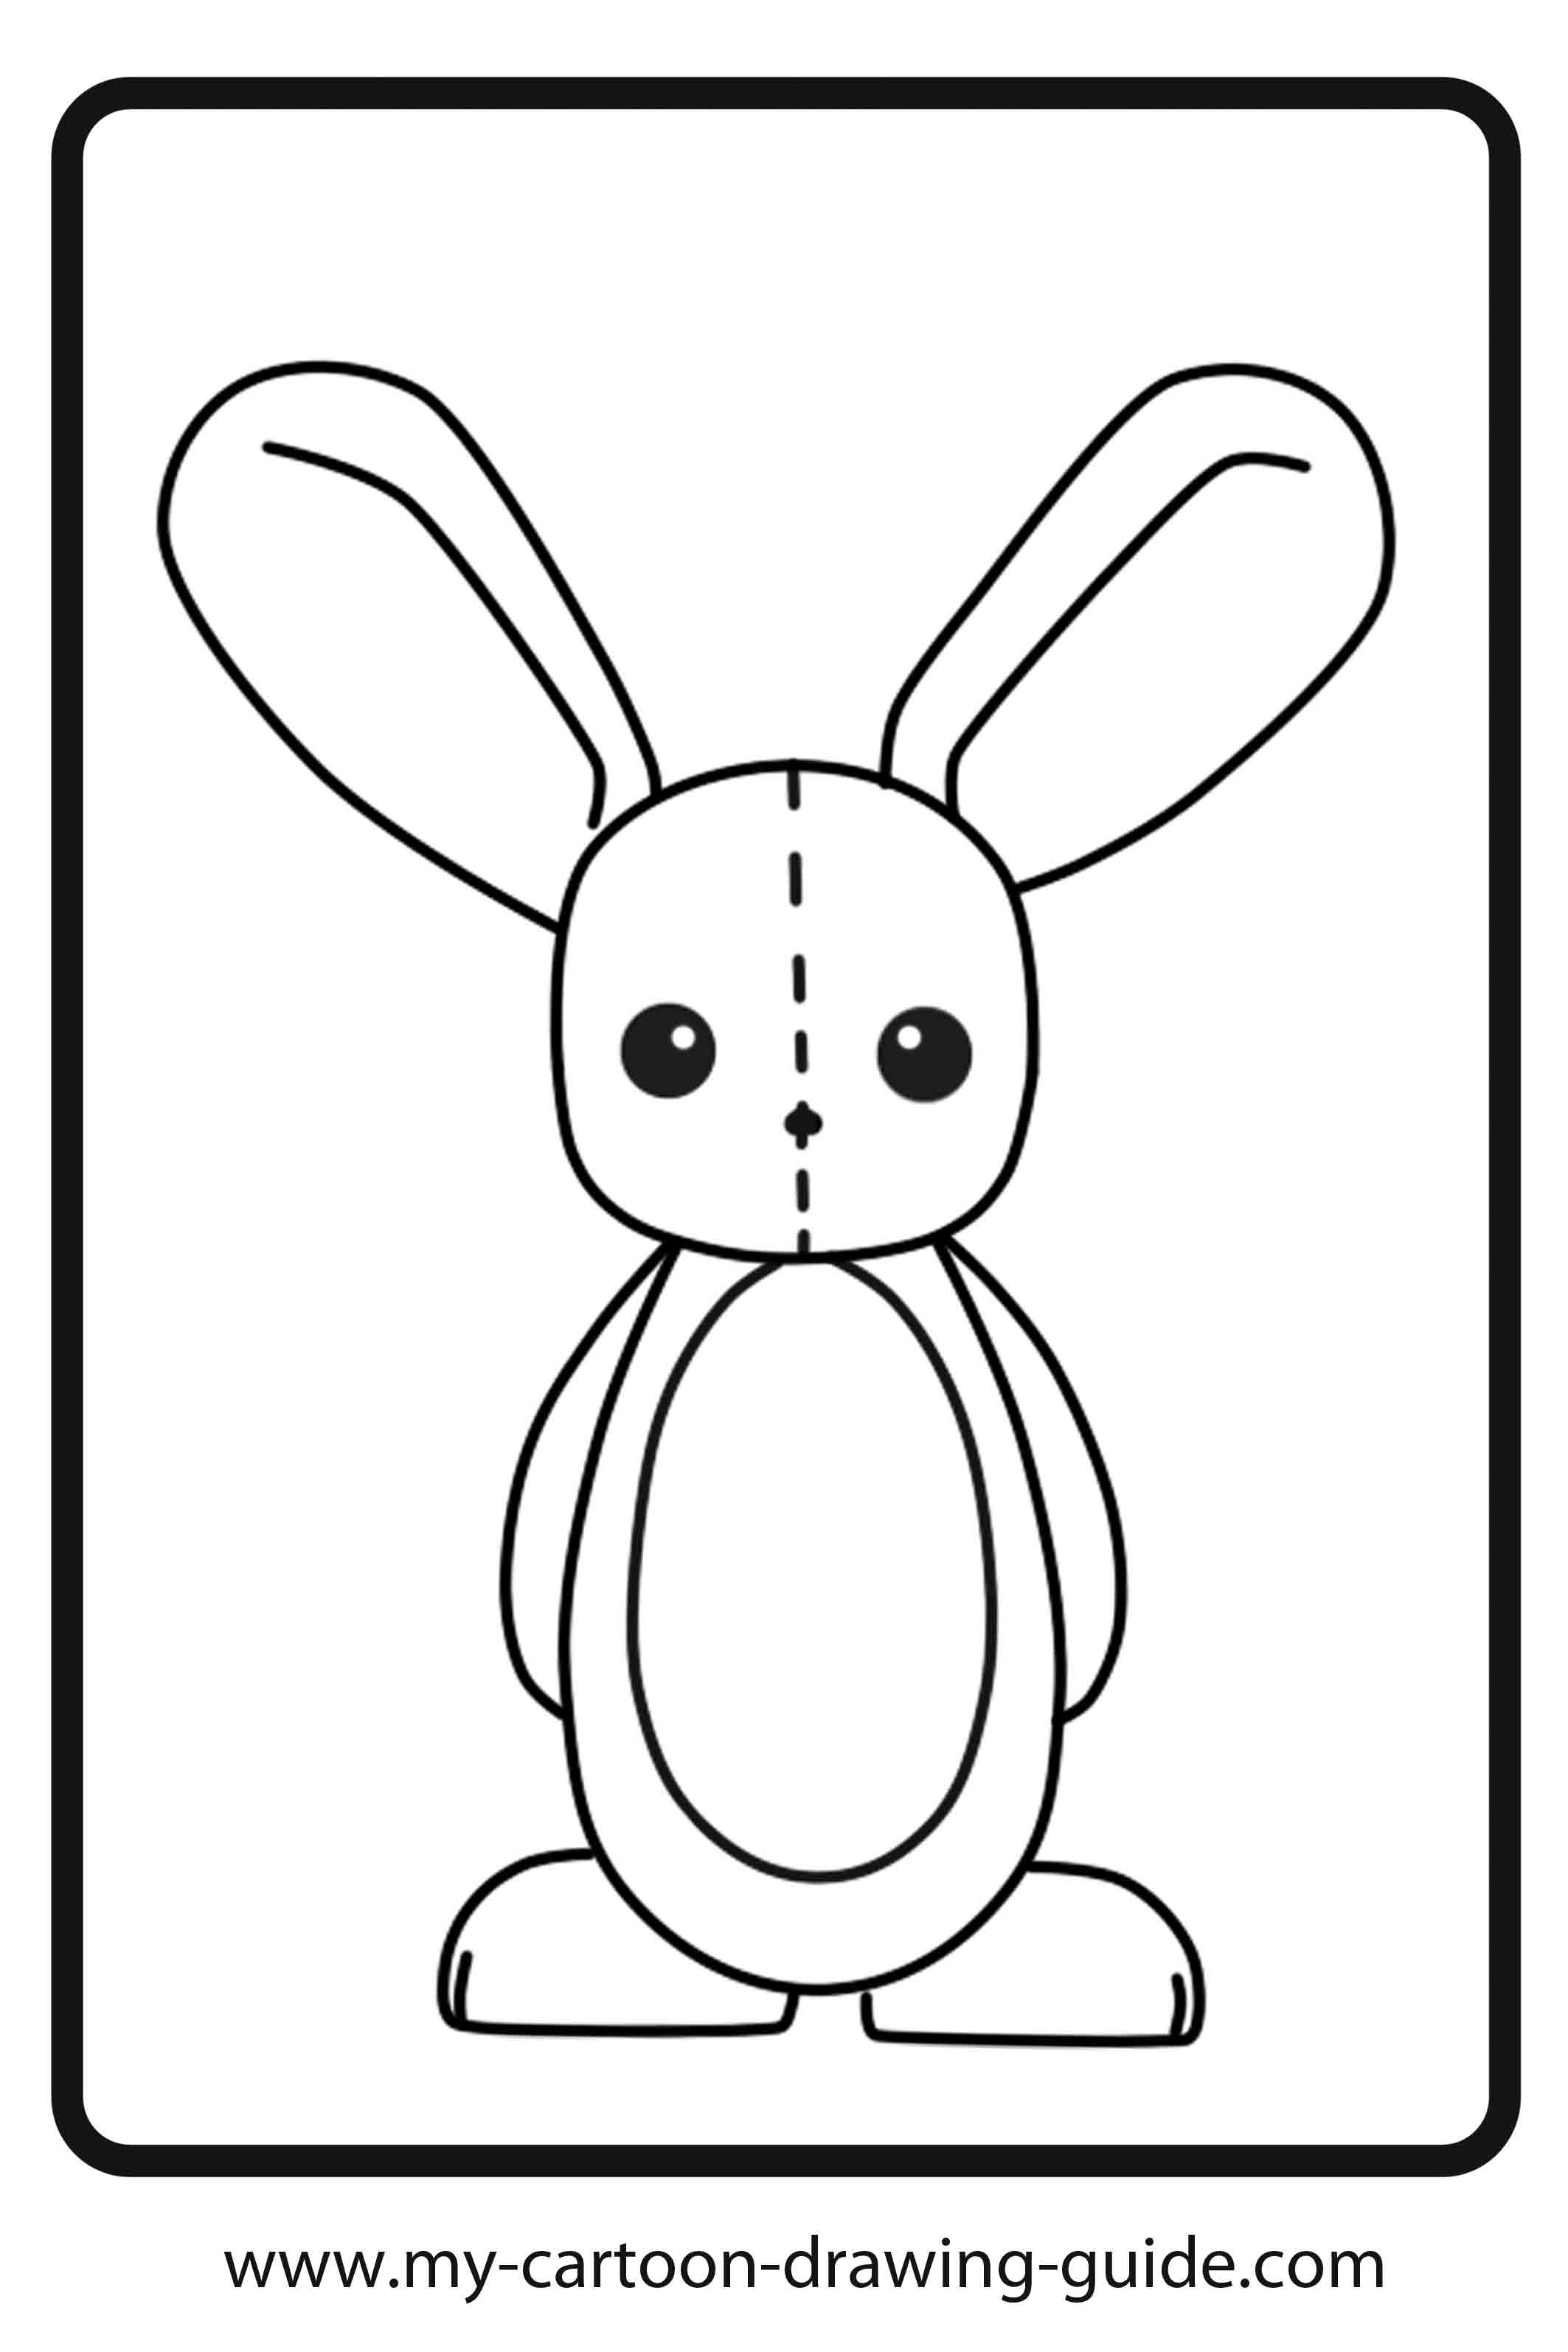 12 on Kids Park Coloring Page 2